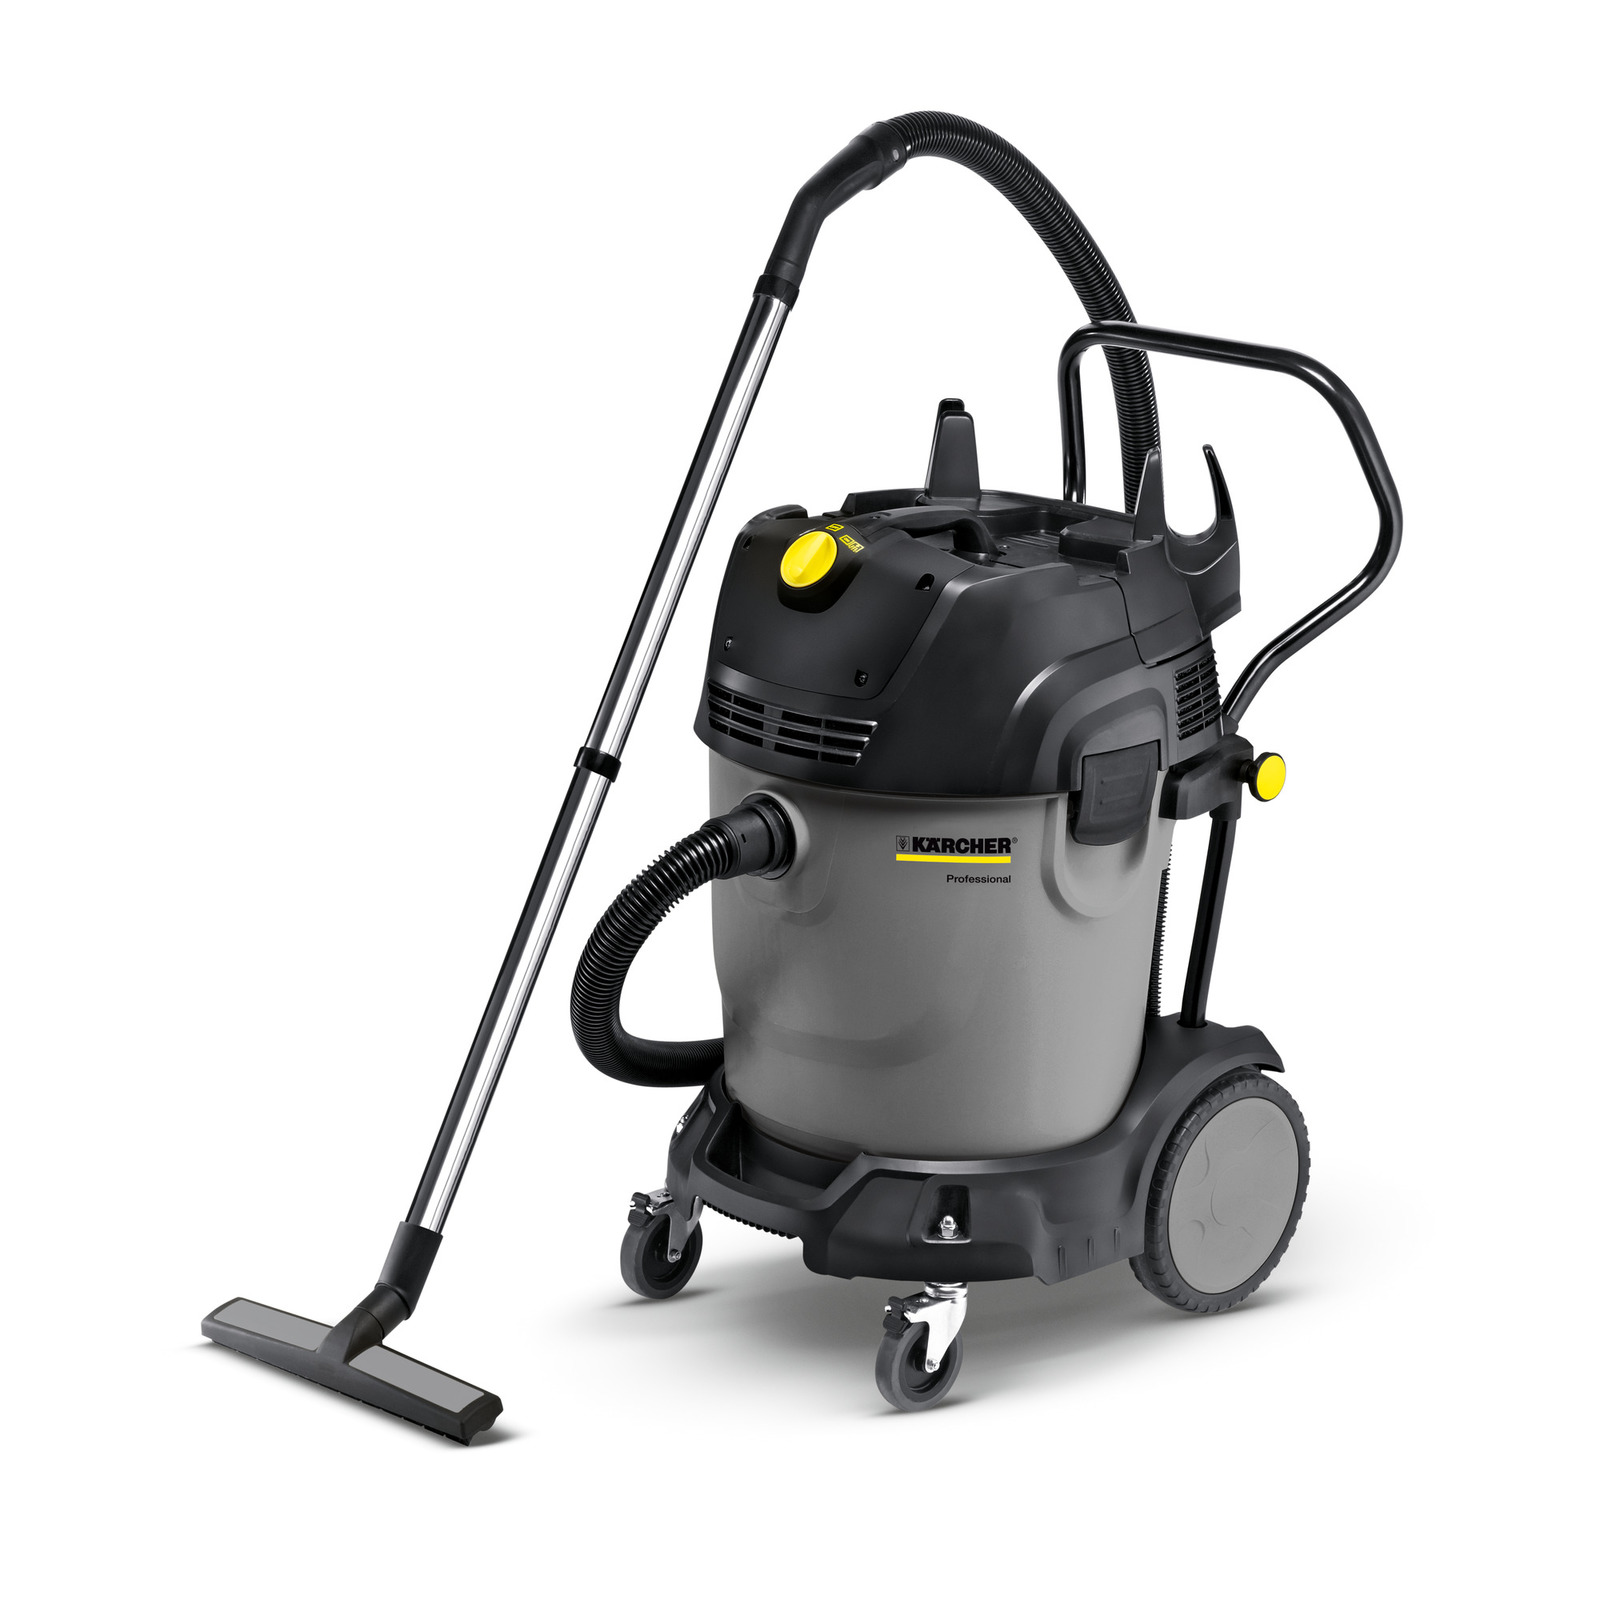 KARCHER - NT 65/2 Tact²